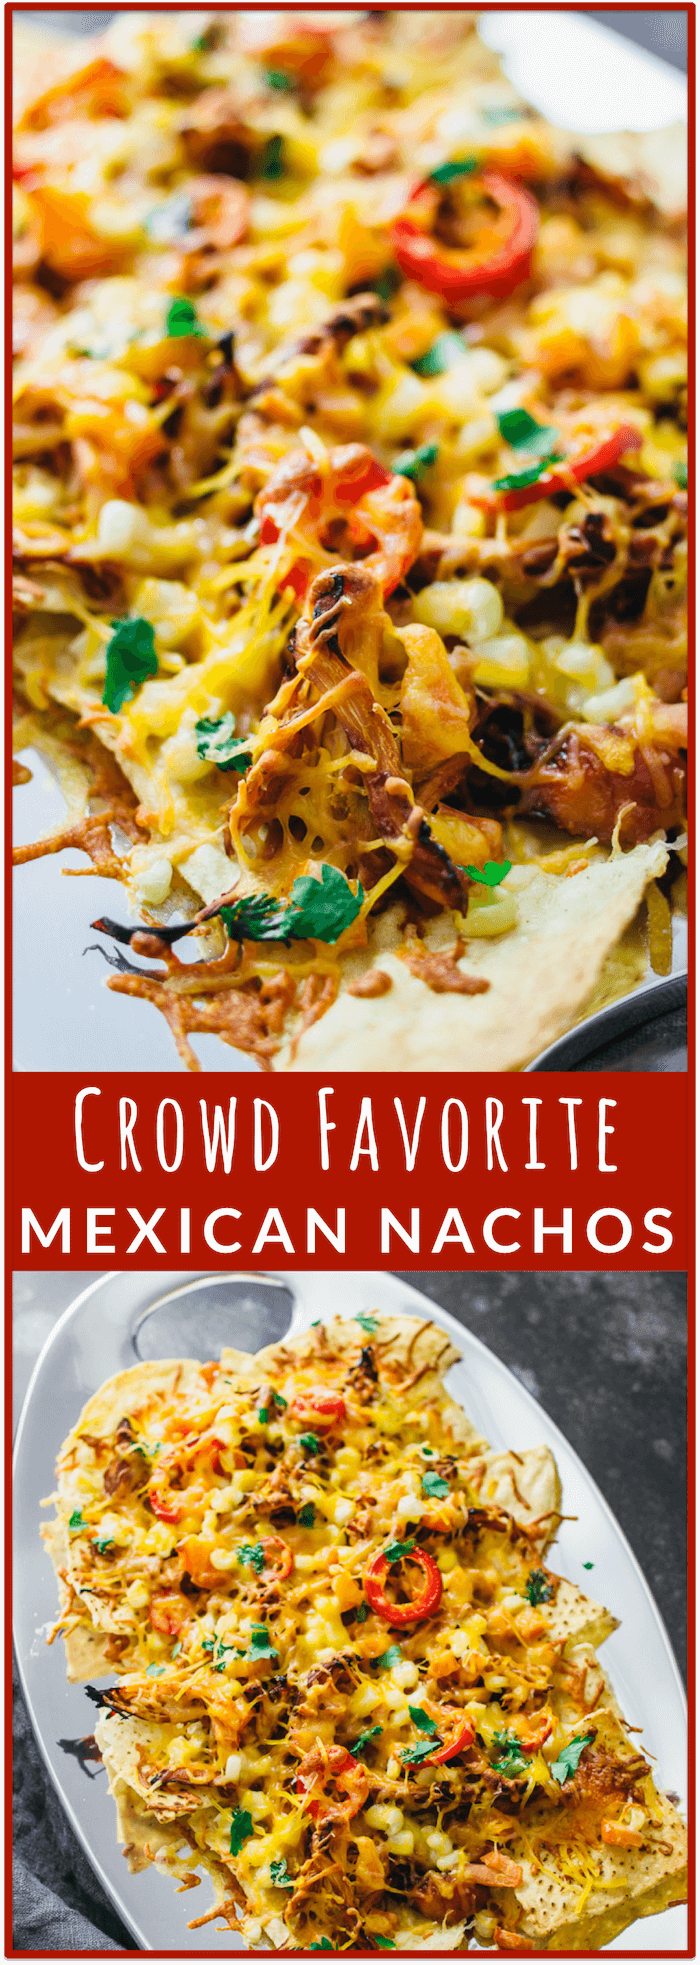 Loaded Mexican nachos with chicken - These LOADED Mexican nachos are super savory and hearty with shredded chicken, diced tomatoes, a splash of corn, sliced jalapeño, and plenty of shredded cheese. This is the perfect recipe for making baked nachos that are a crowd favorite. - savorytooth.com